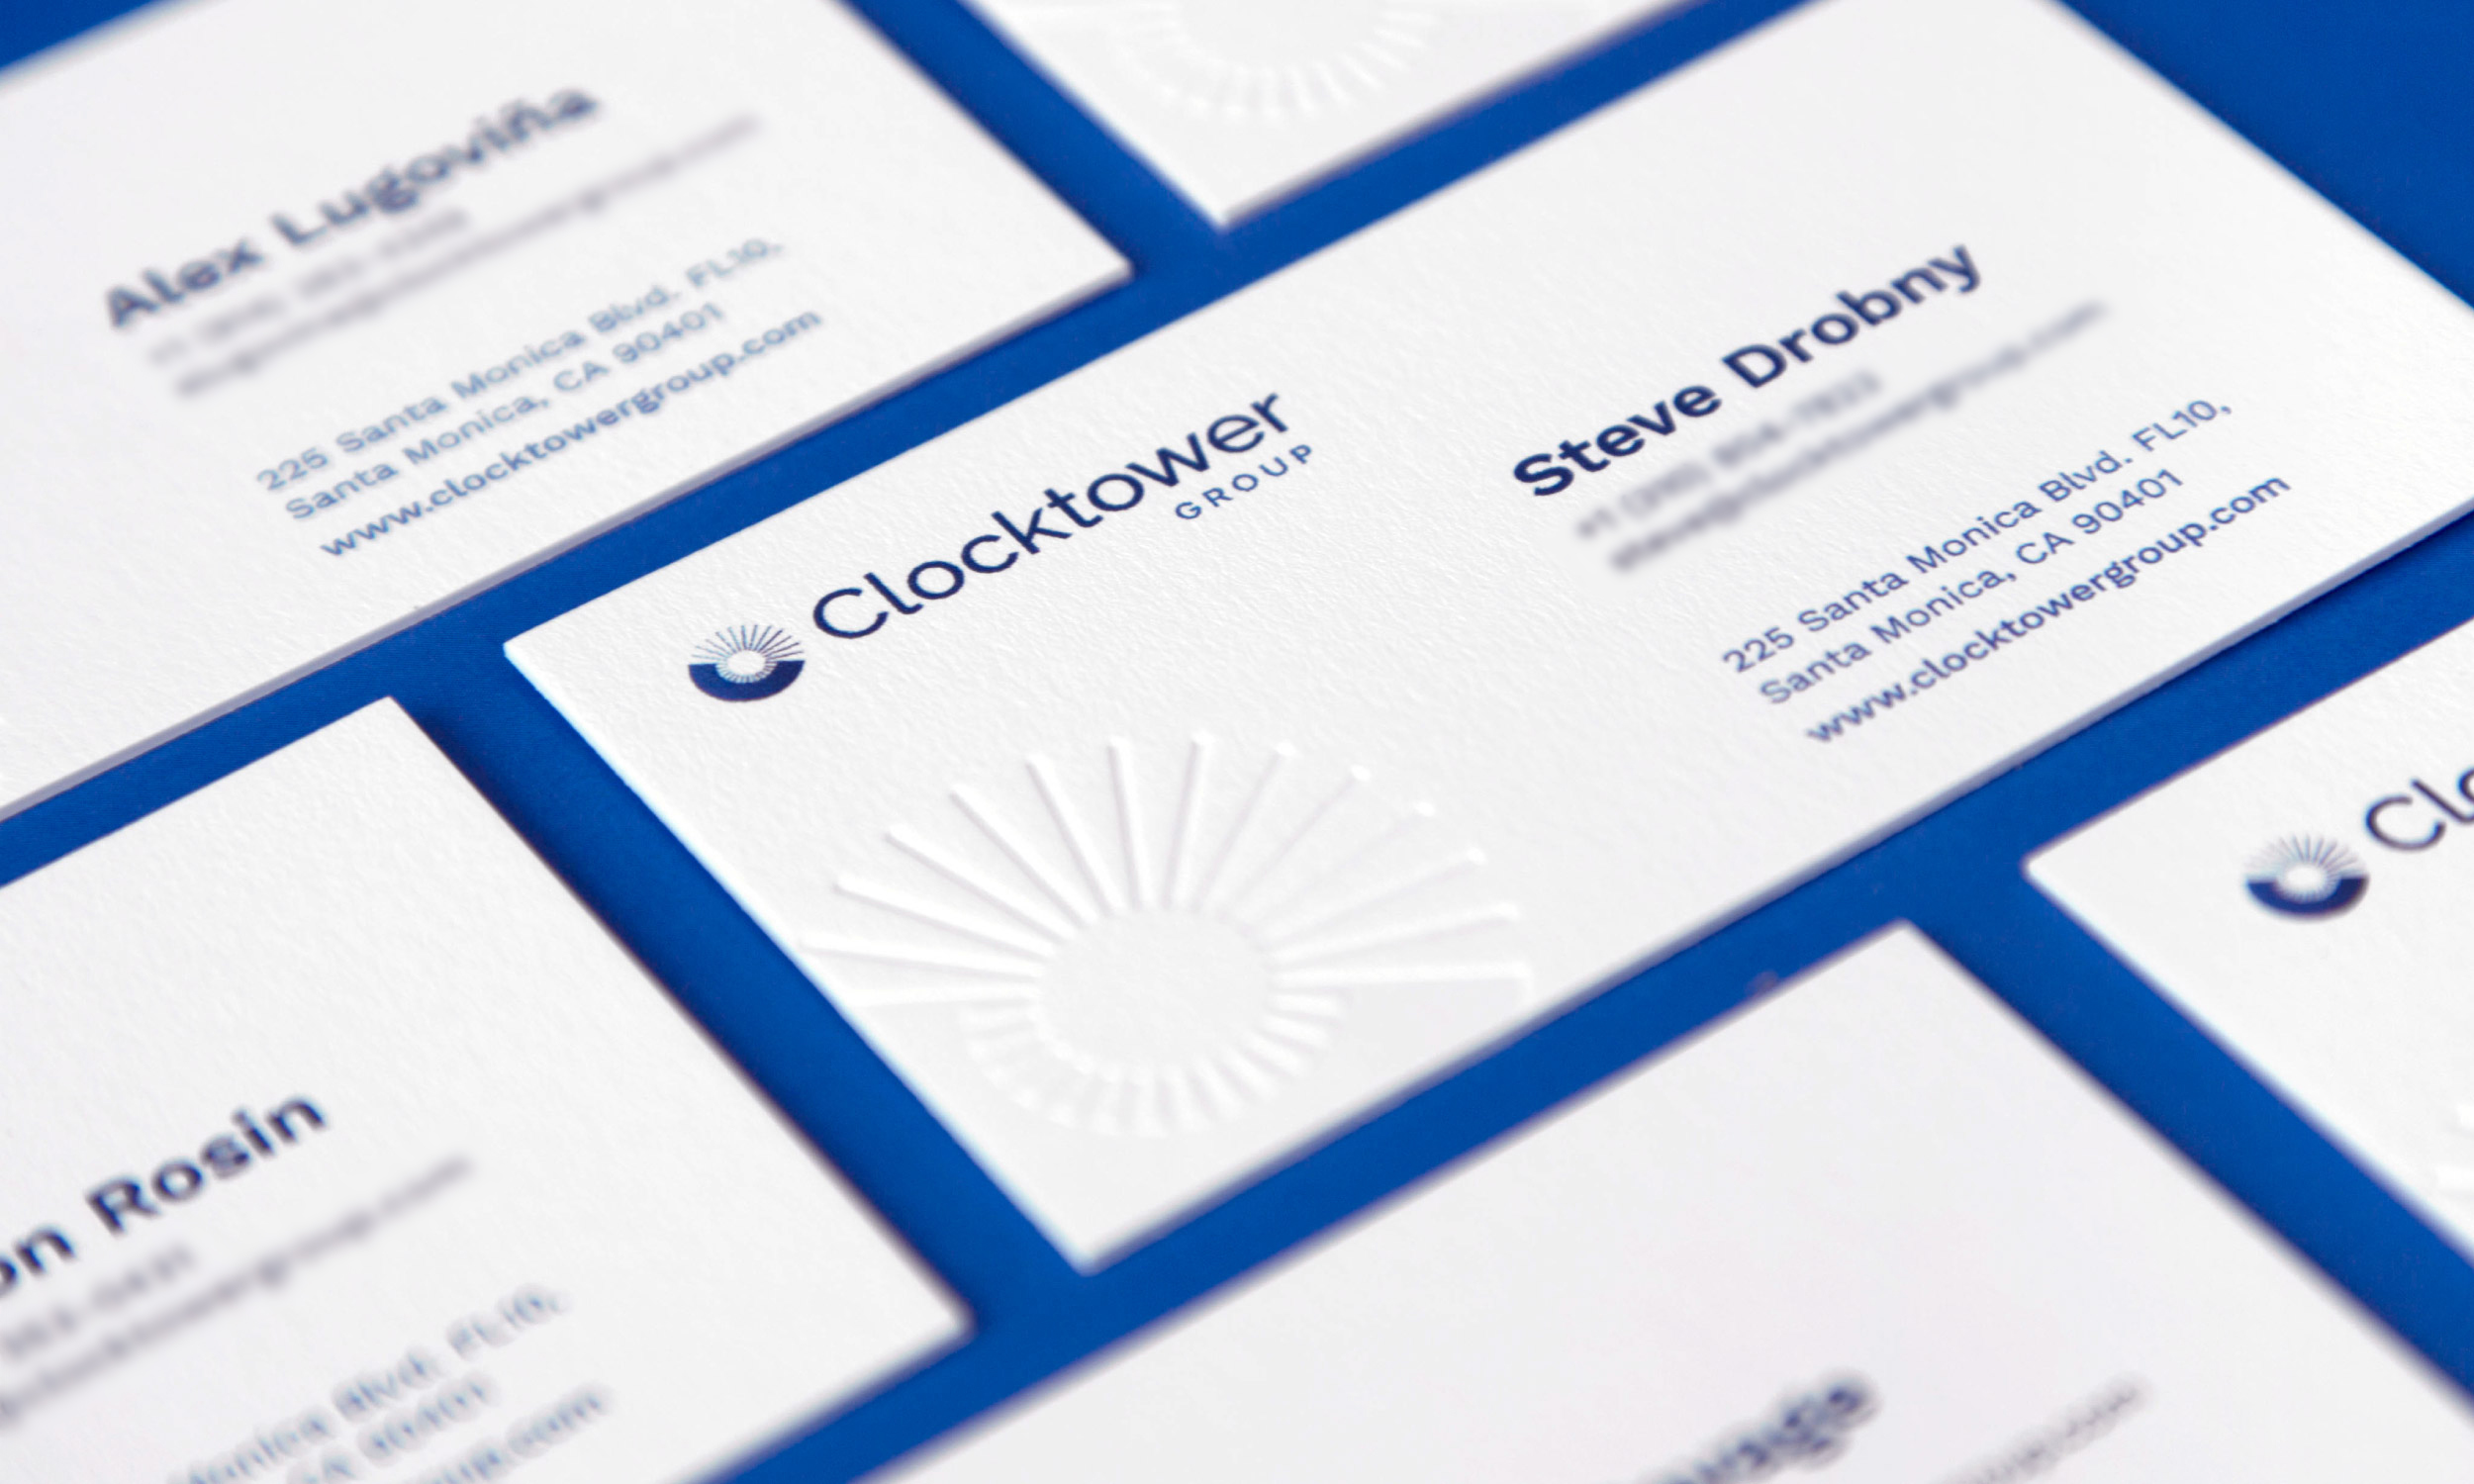 clocktower brand identity design corporate business cards